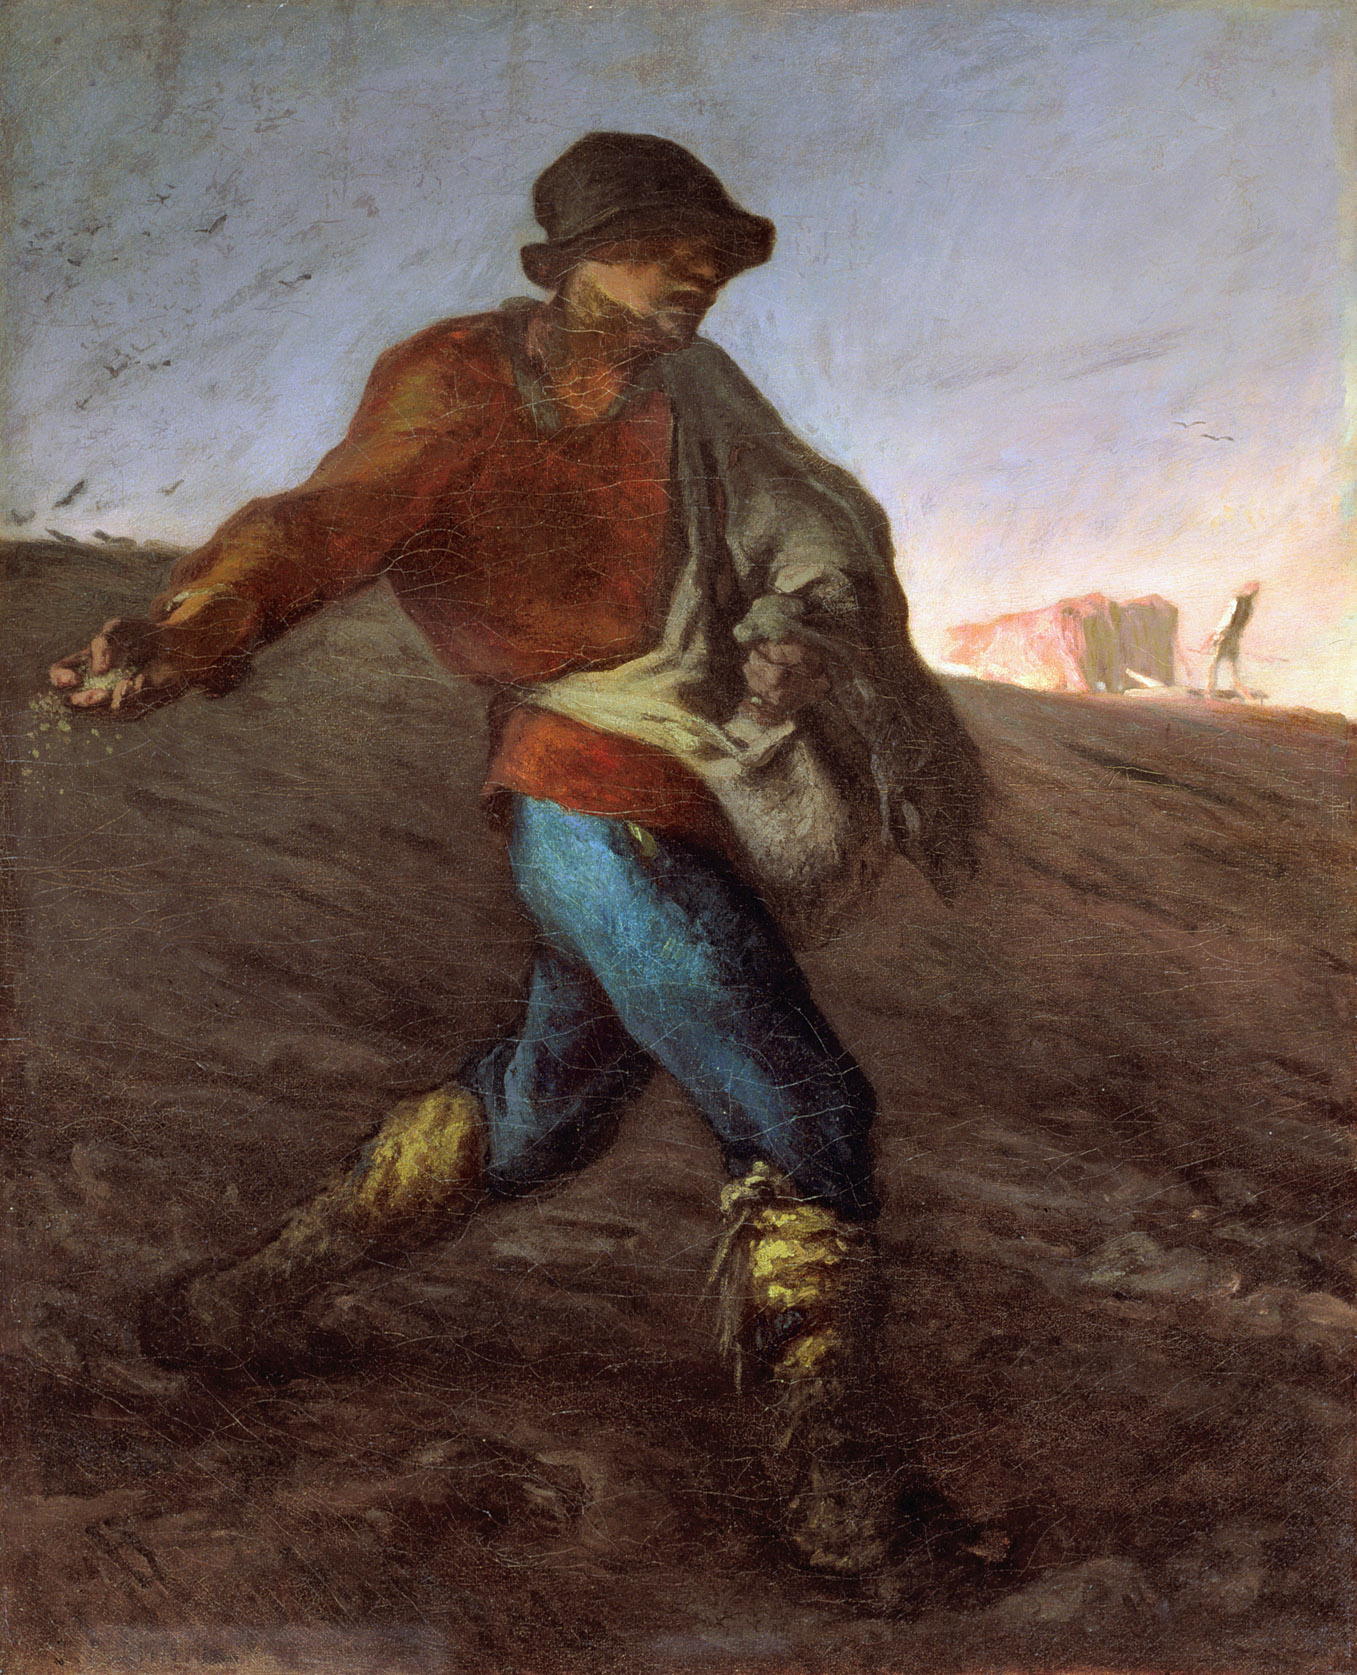 The Sower, by Jean-Françios Millet, 1850. Museum of Fine Arts, Boston, Massachusetts.